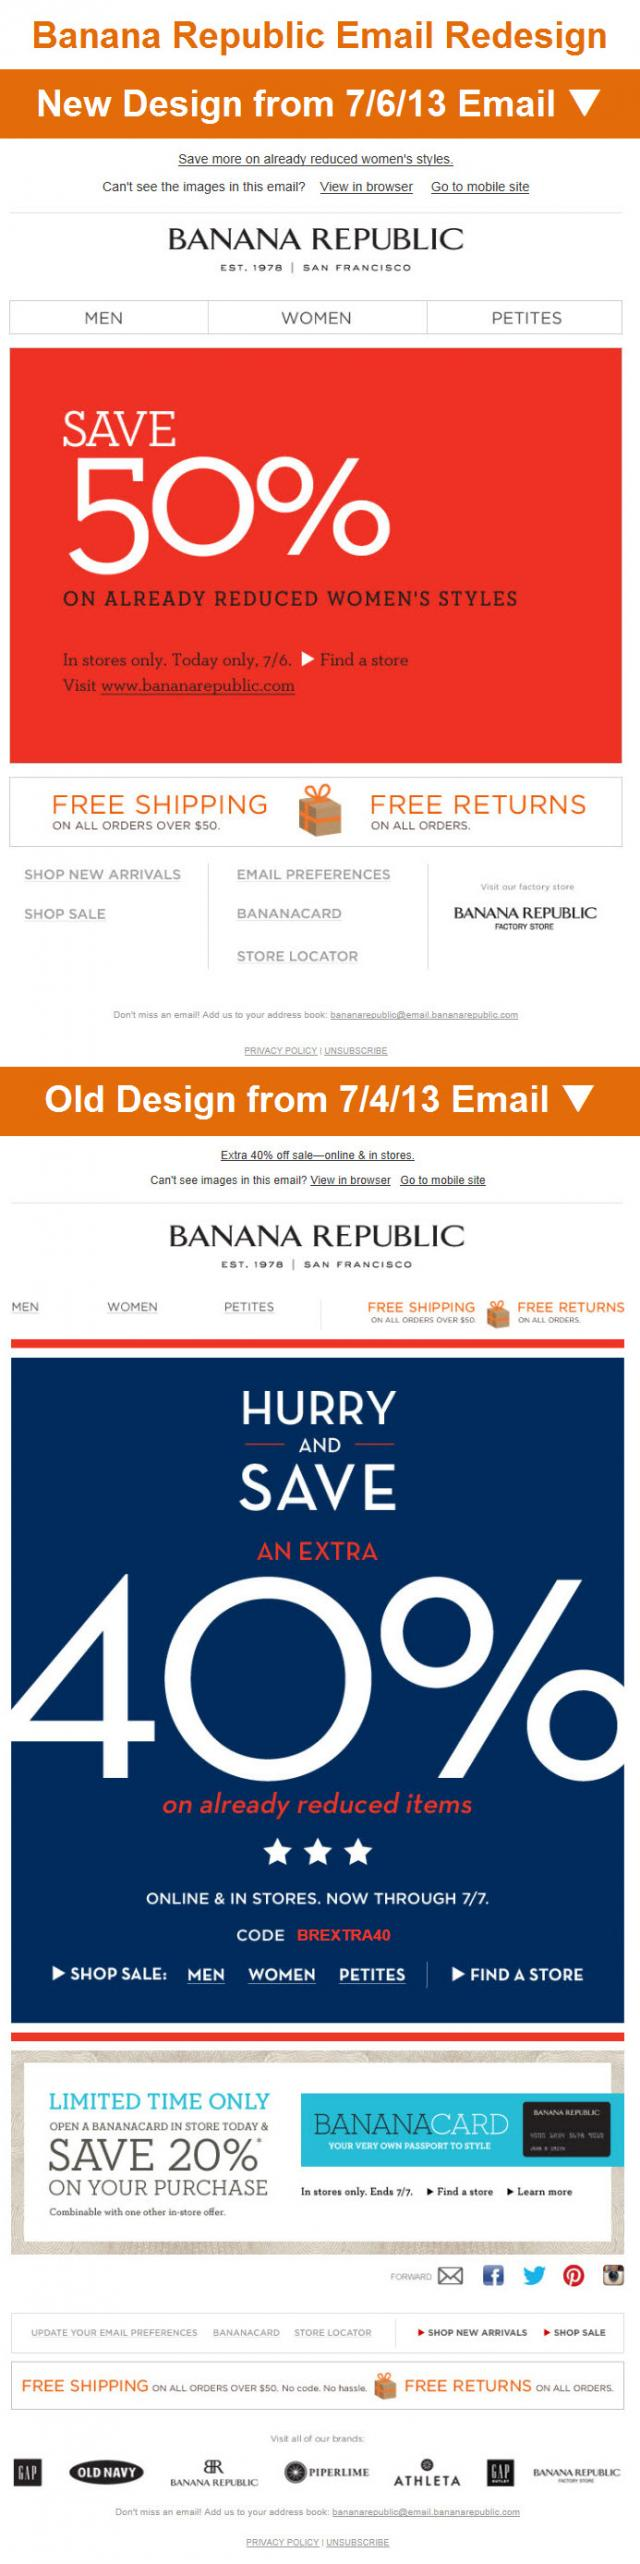 Banana Republic Email Redesign